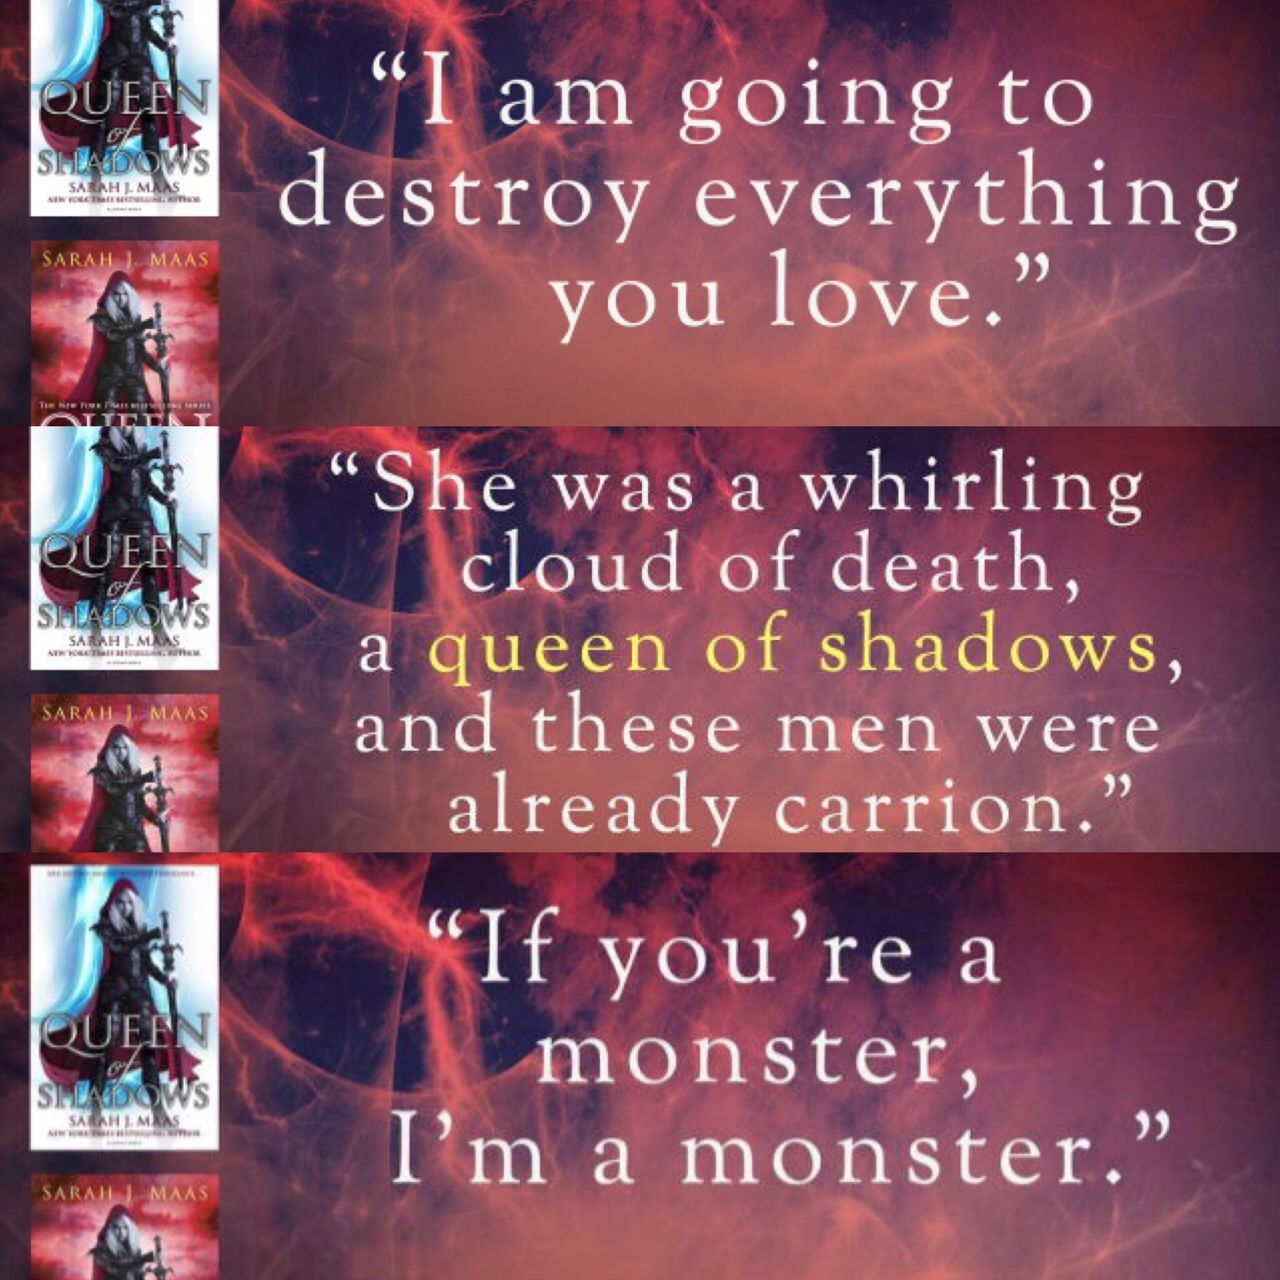 Are These Quotes From Queen Of Shadows Where Did They Come From